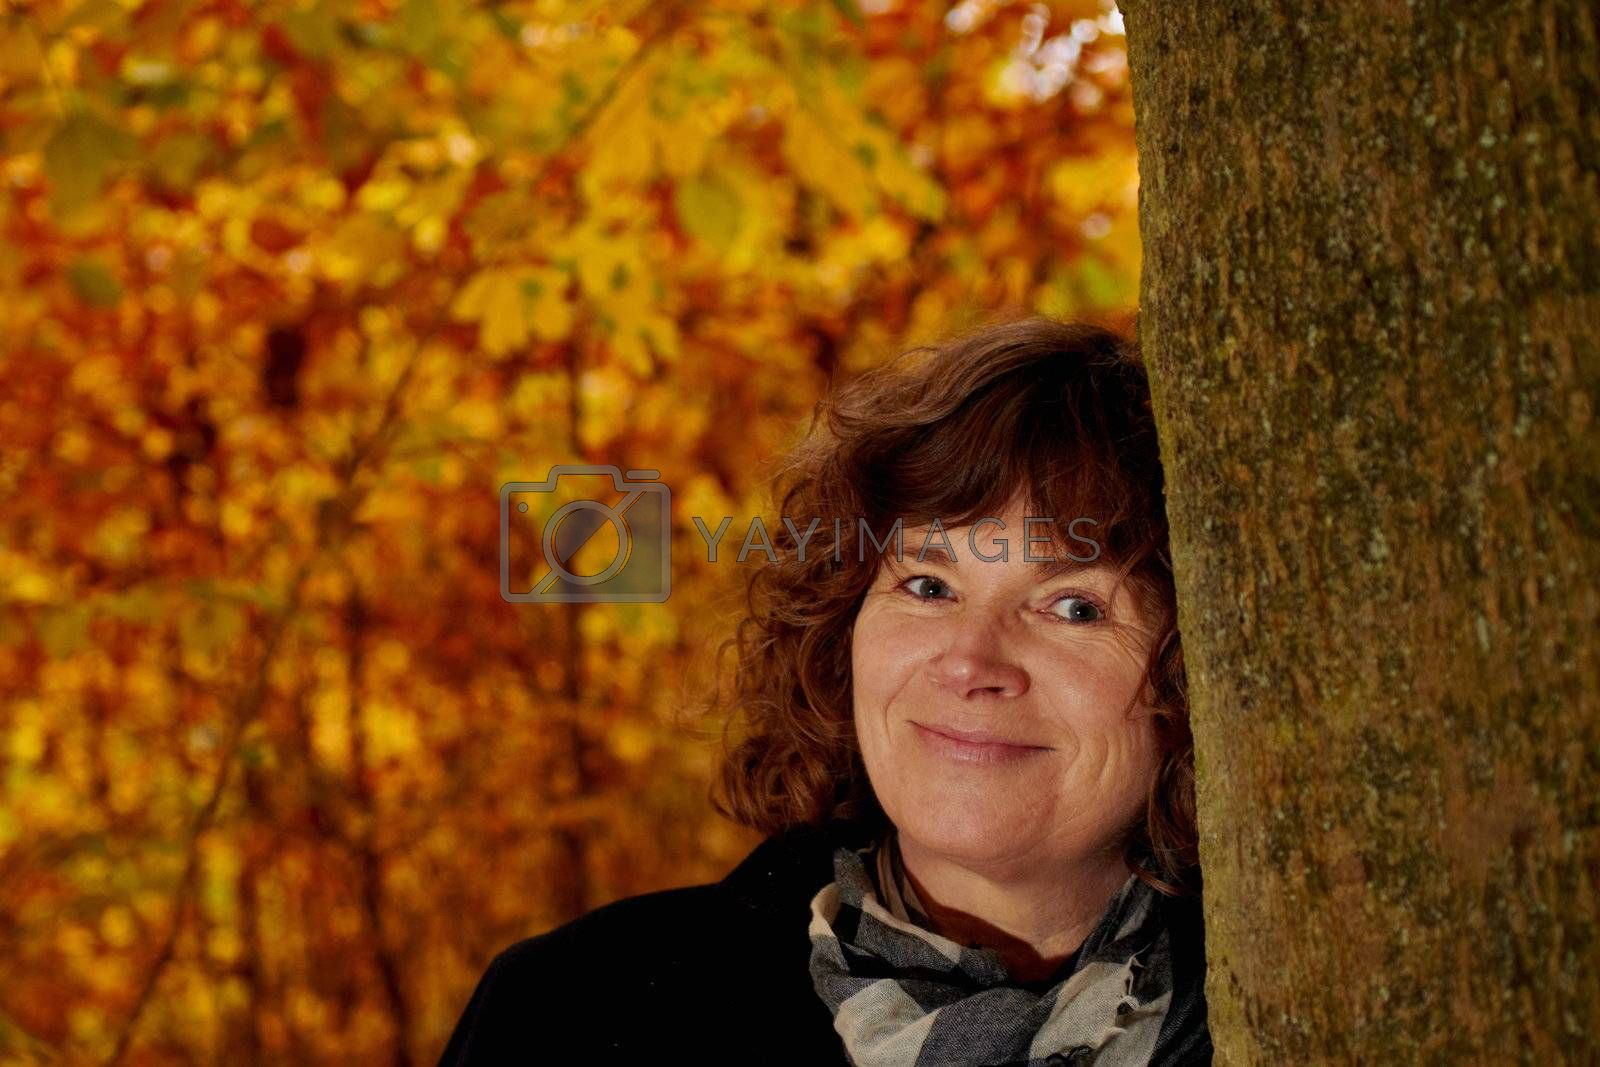 Royalty free image of Fall - mugshot of mature woman looking at you by FreedomImage